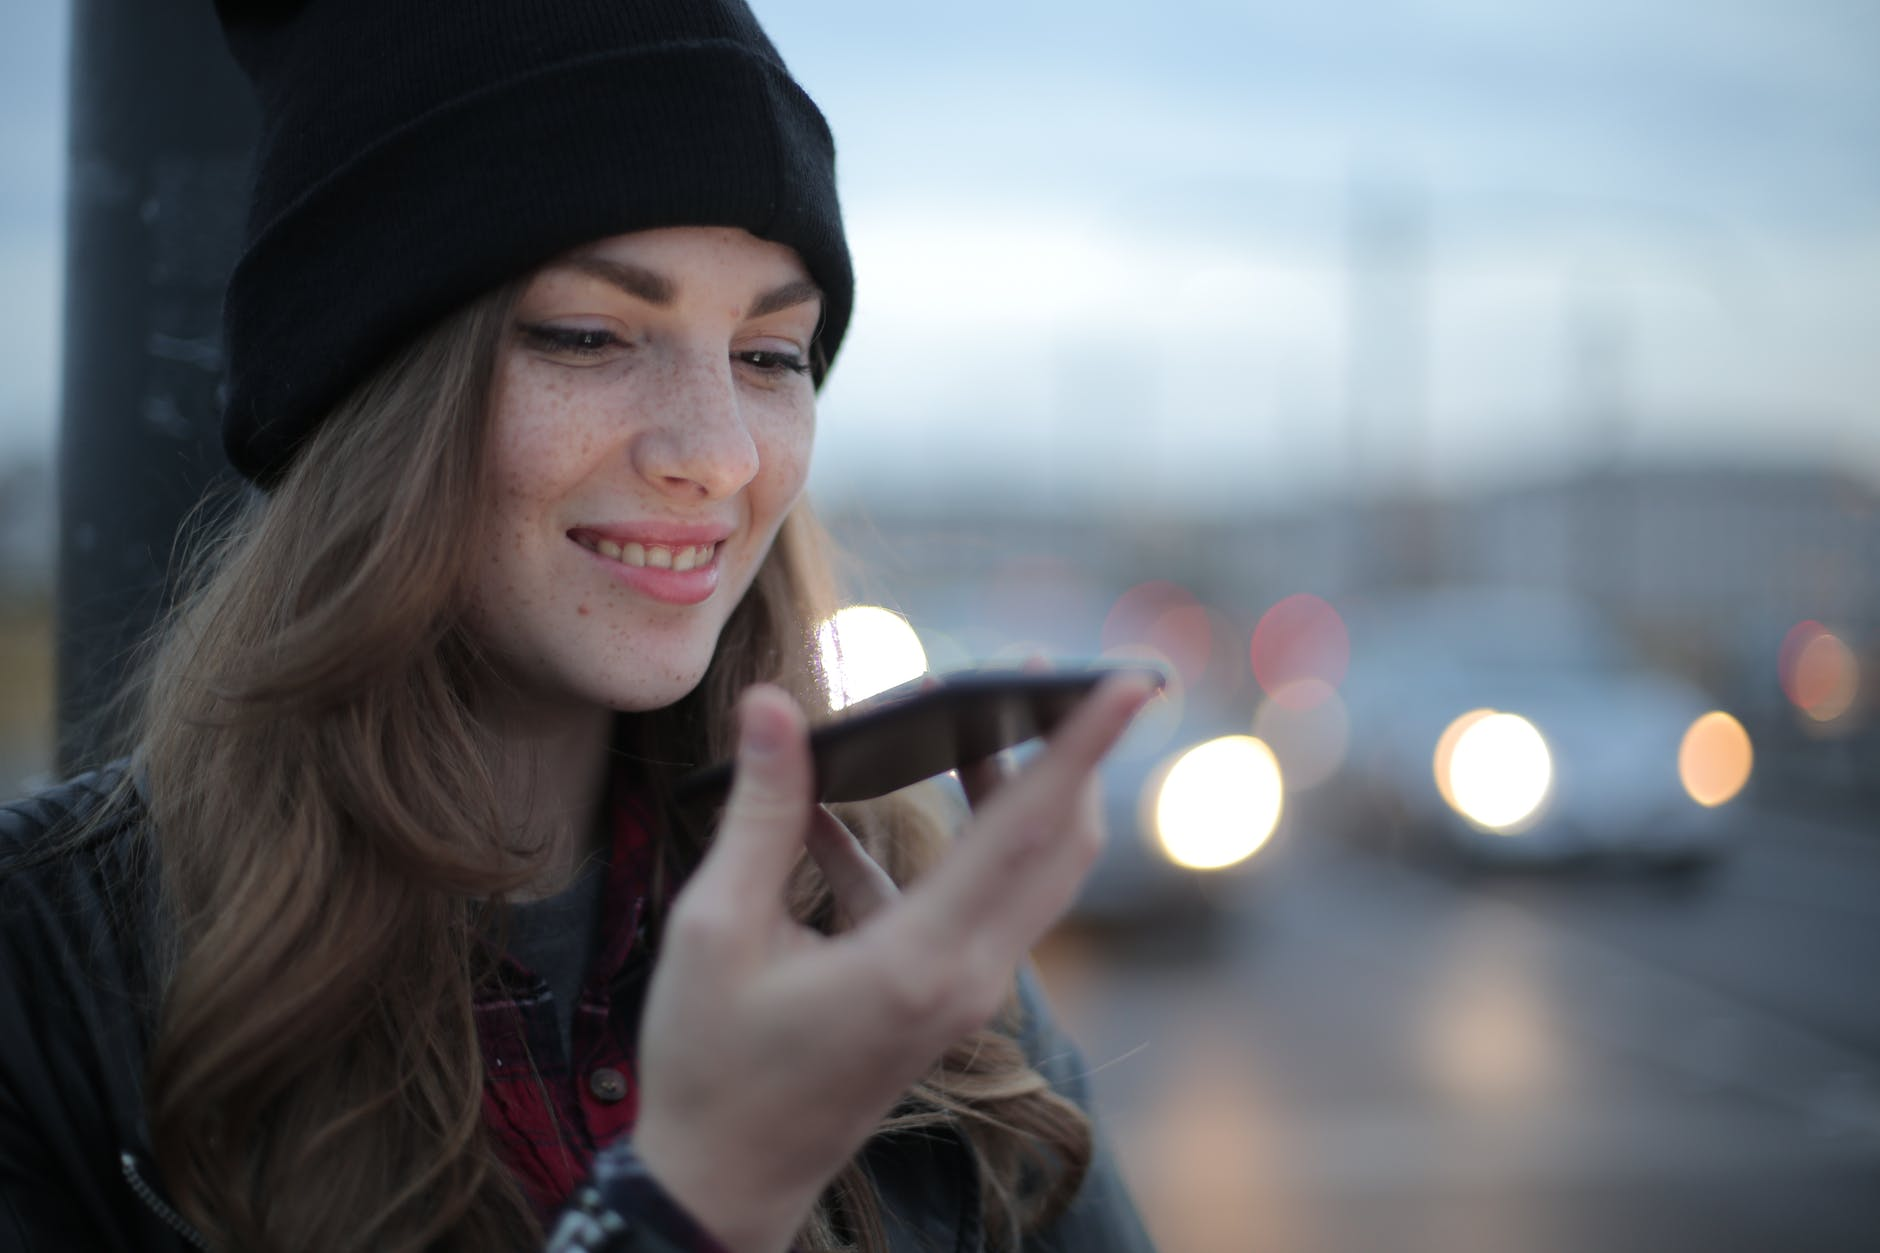 joyful young woman phoning on street in evening